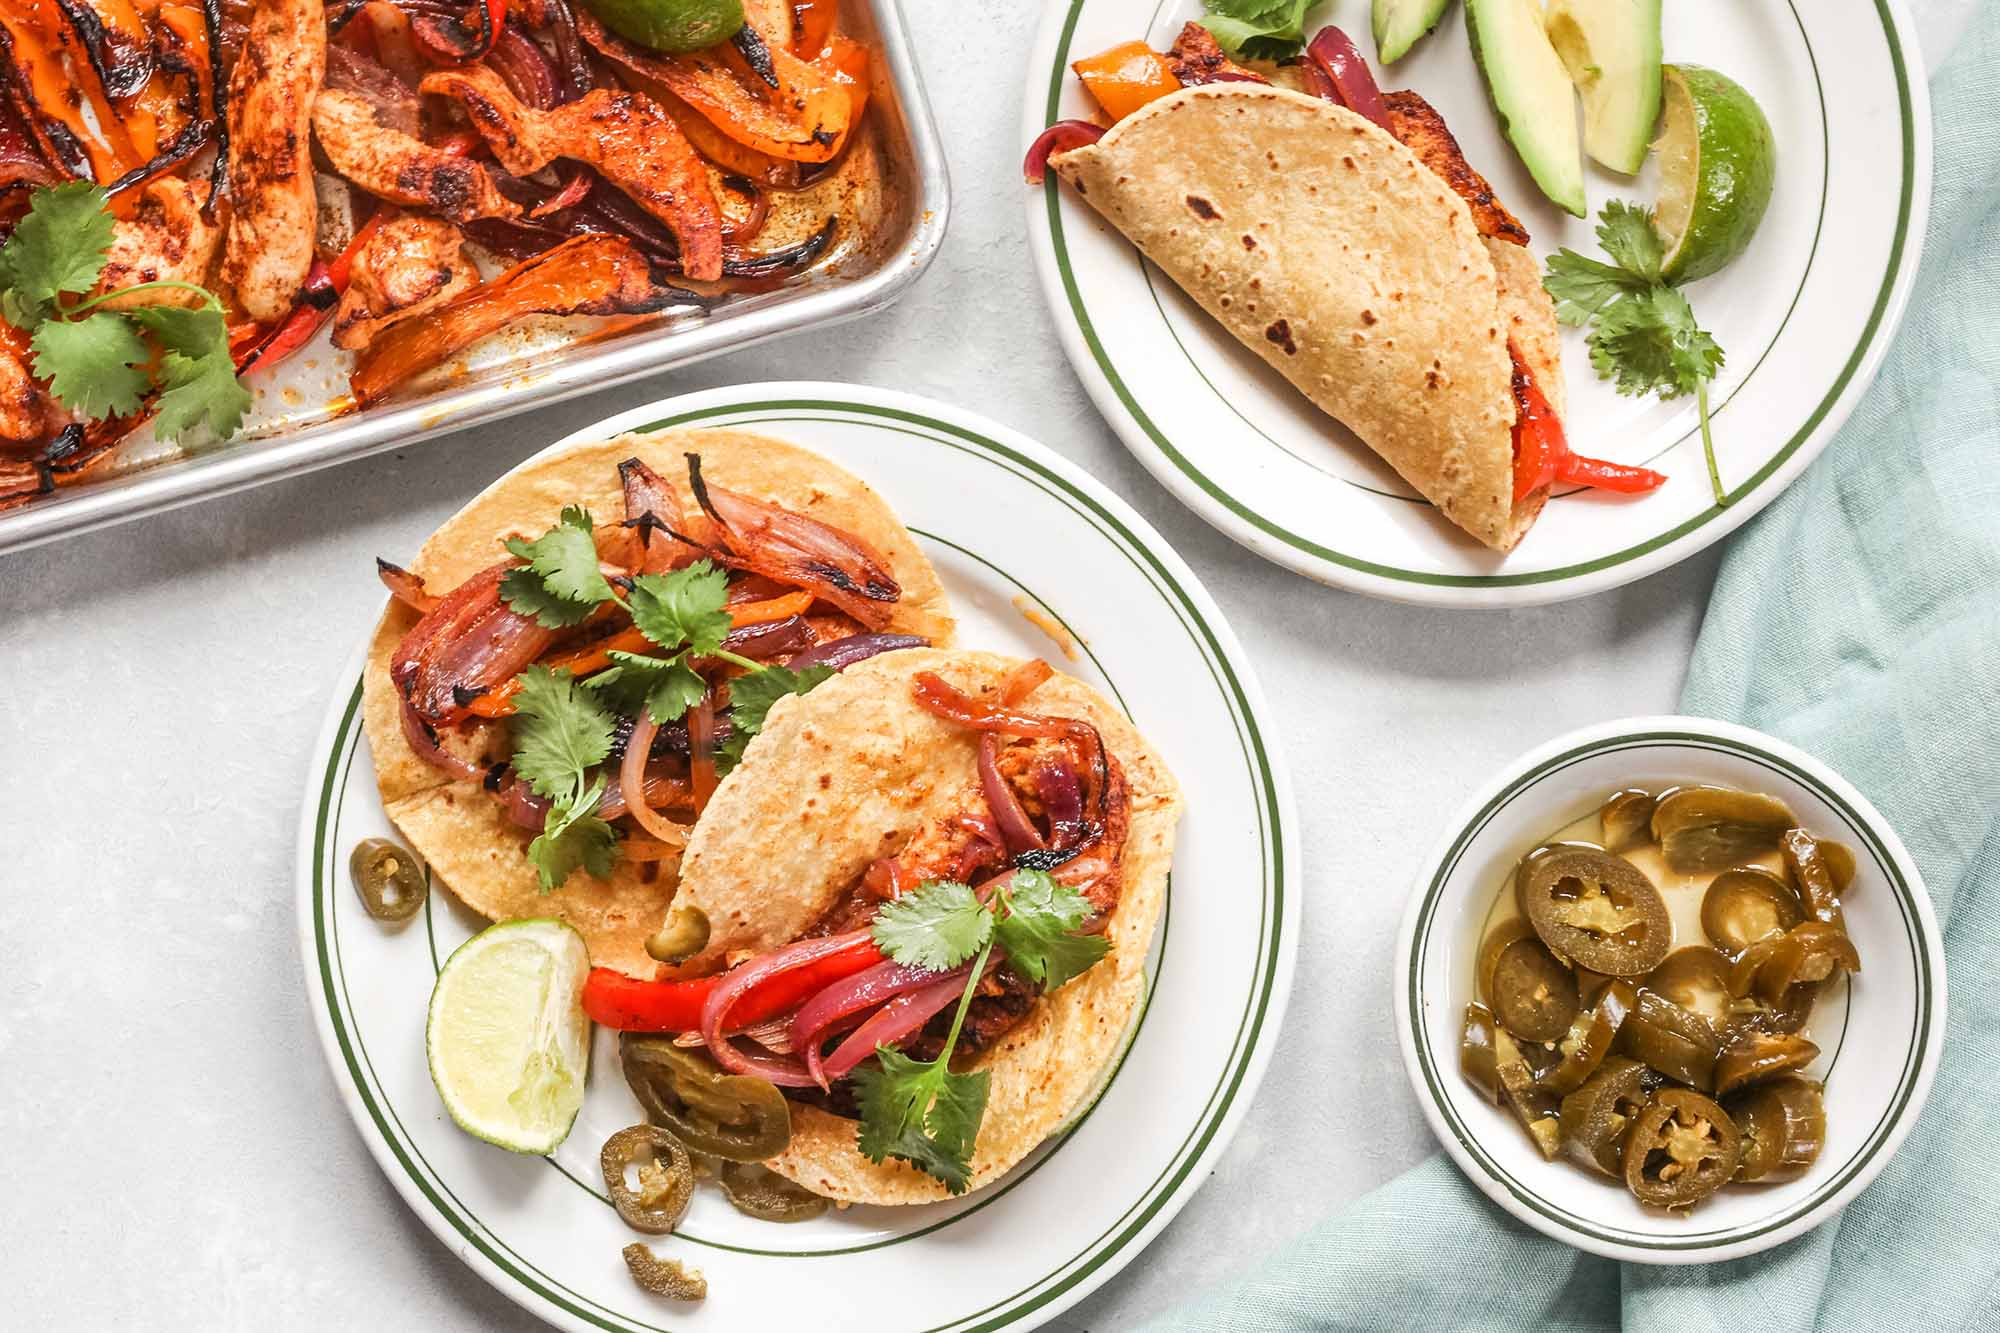 Sheet Pan Chicken Fajitas with Peppers and Onions